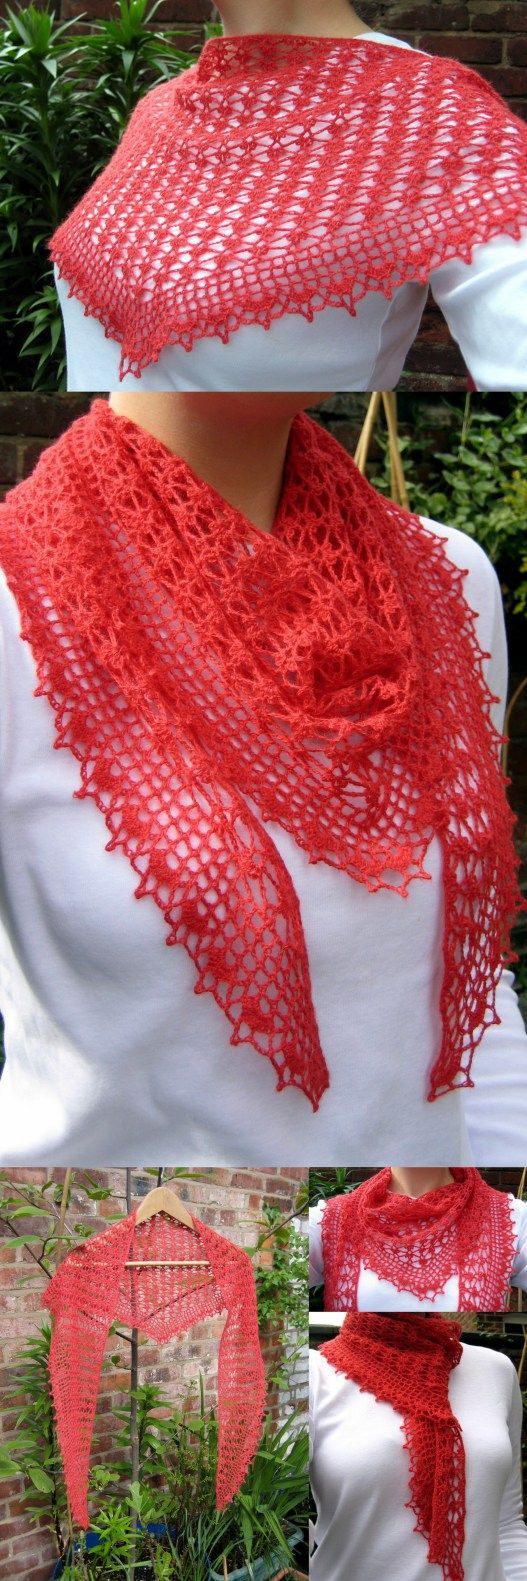 Häkel-Tuch | Crochet scarf (ladies) | Pinterest | Tücher